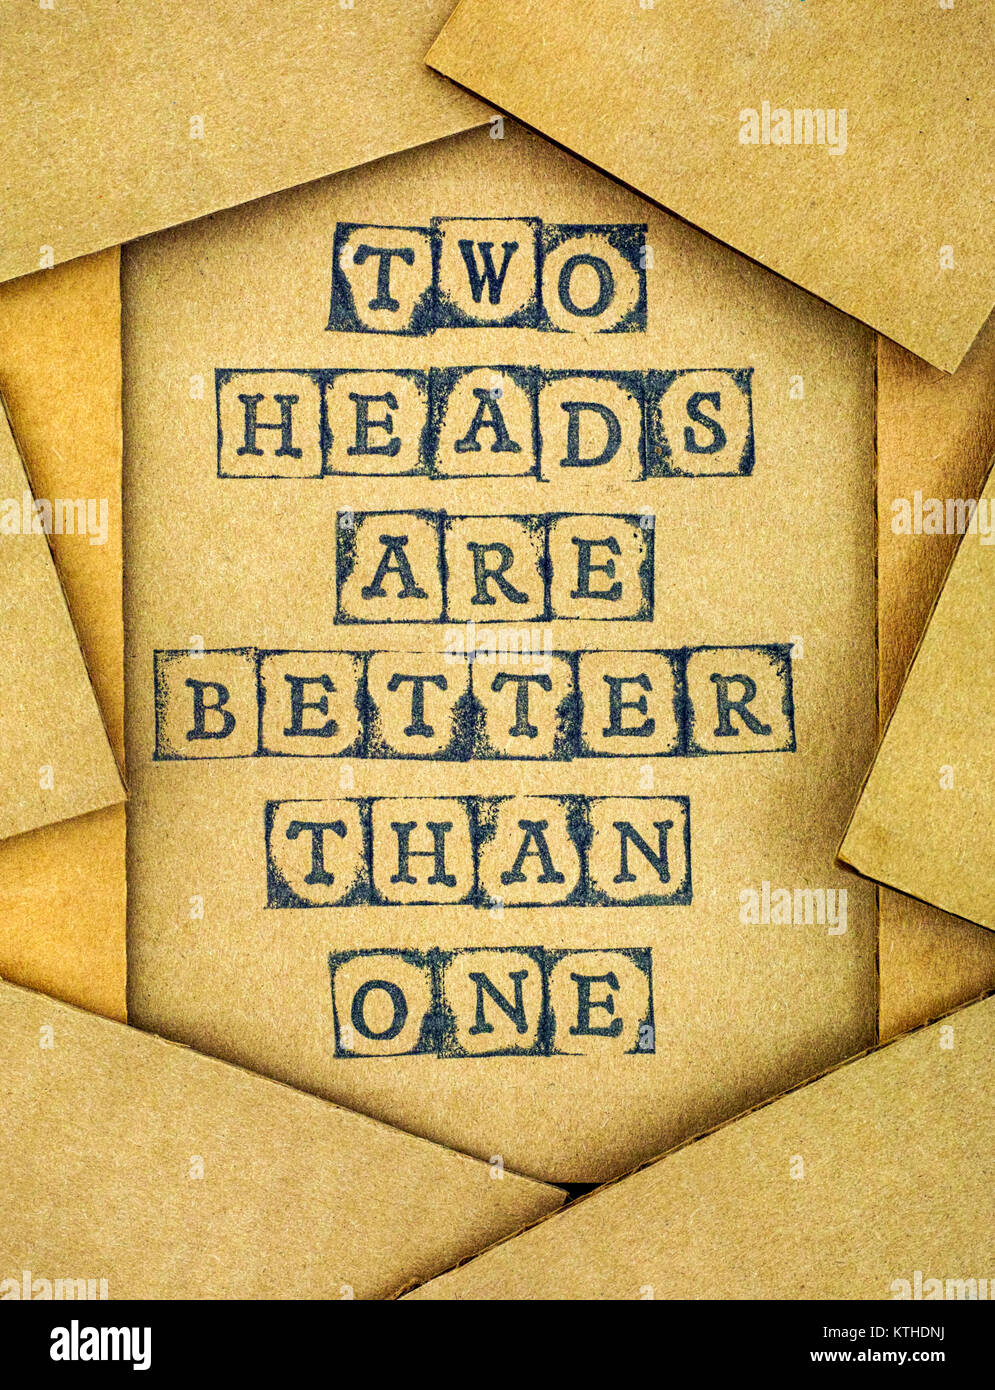 Phrase Two Heads Are Better Than One make by black alphabet stamps on cardboard with some piece of cardboard. - Stock Image